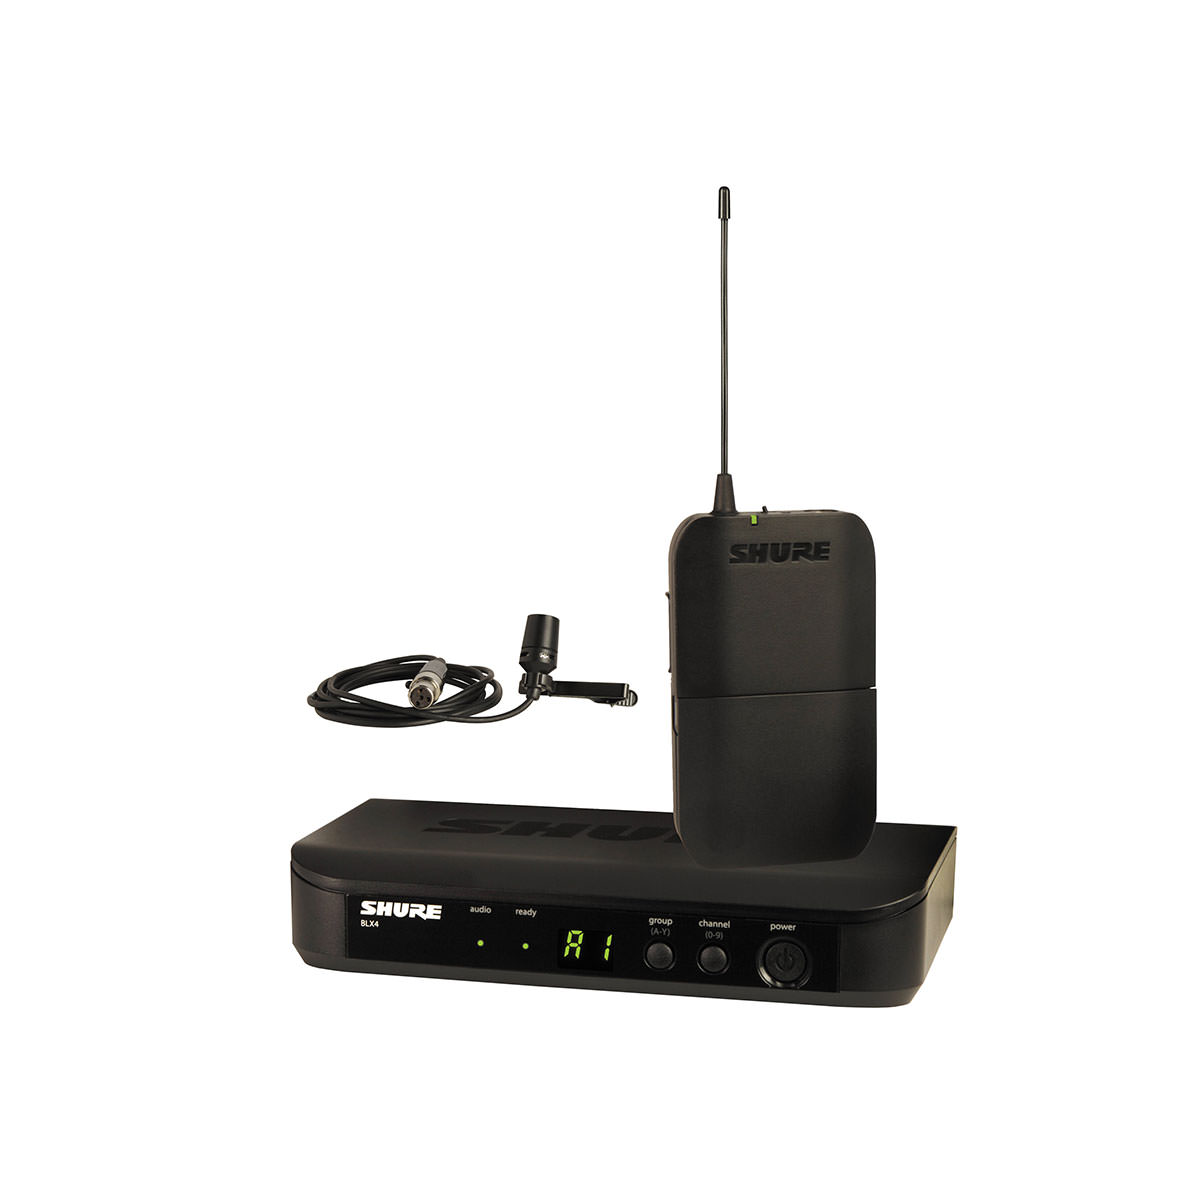 Shure BLX 14E/ CVL Lapel Wireless Microphone System